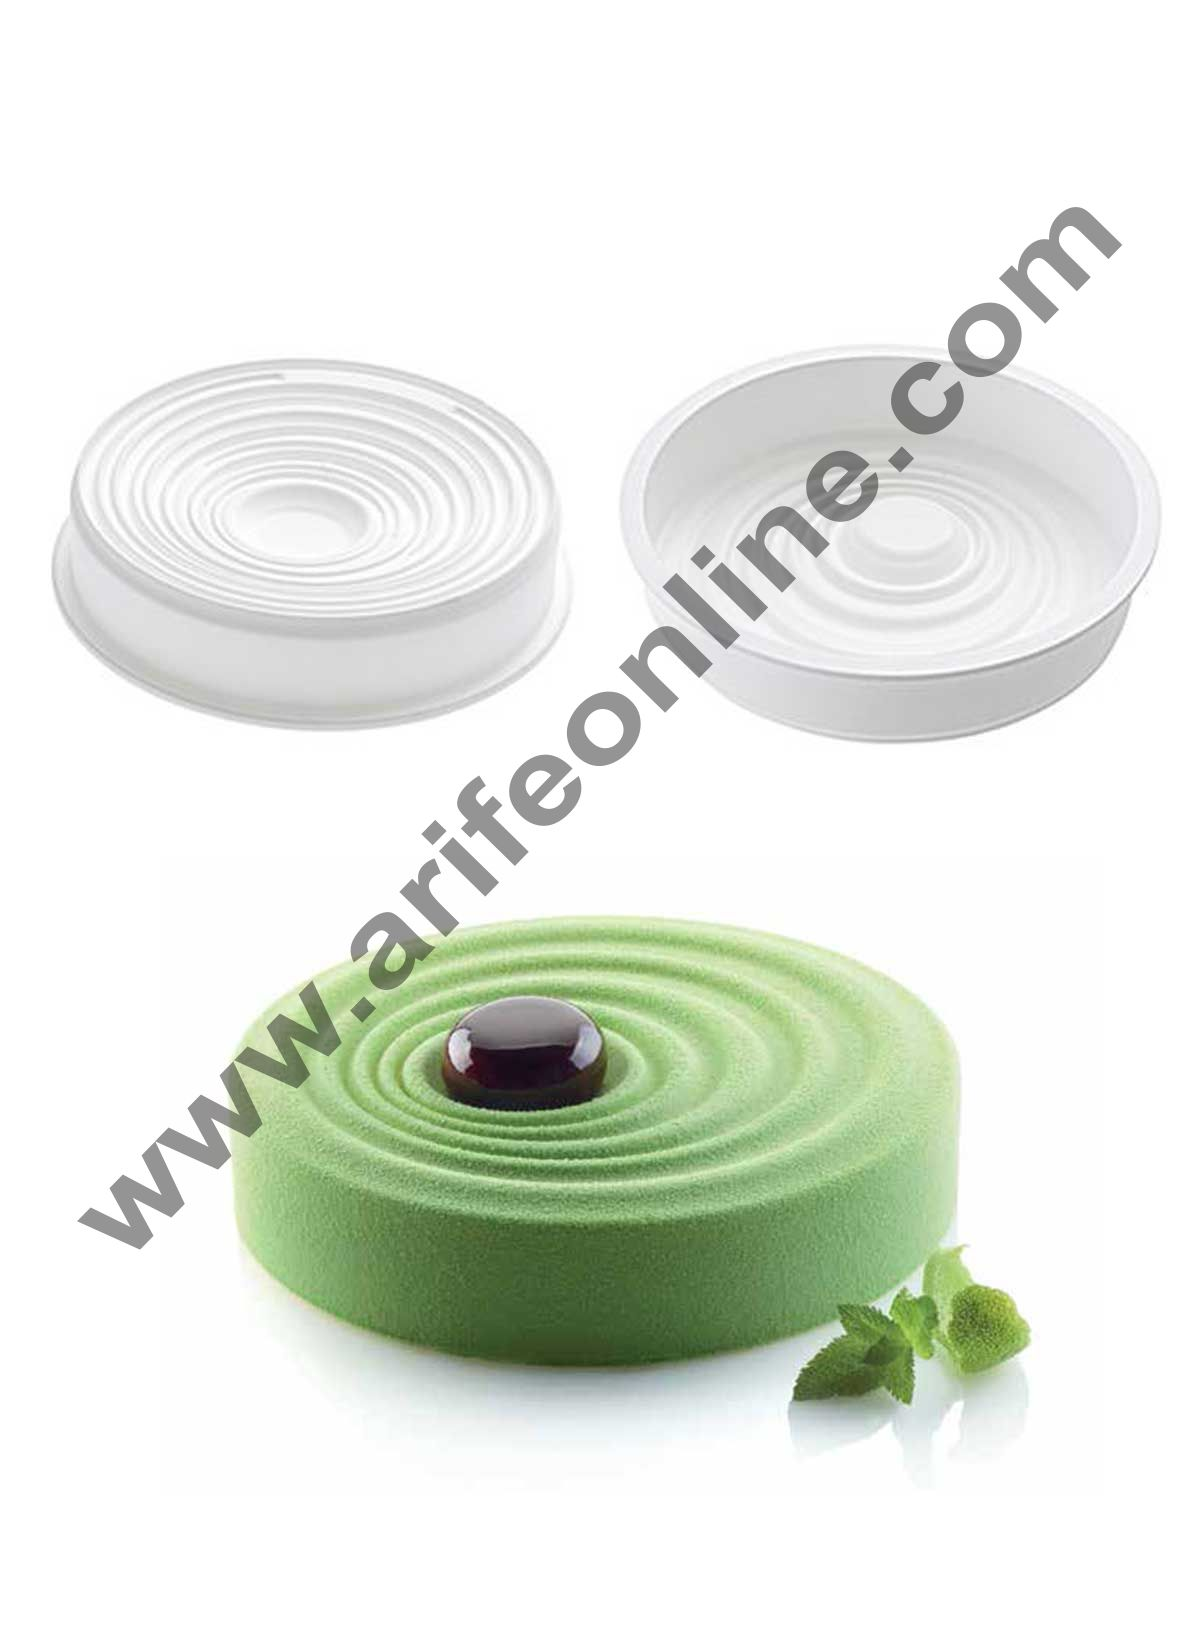 Cake Decor Silicon Vague Design Cake Mould Mousse Cake Mould Silicon Moulds